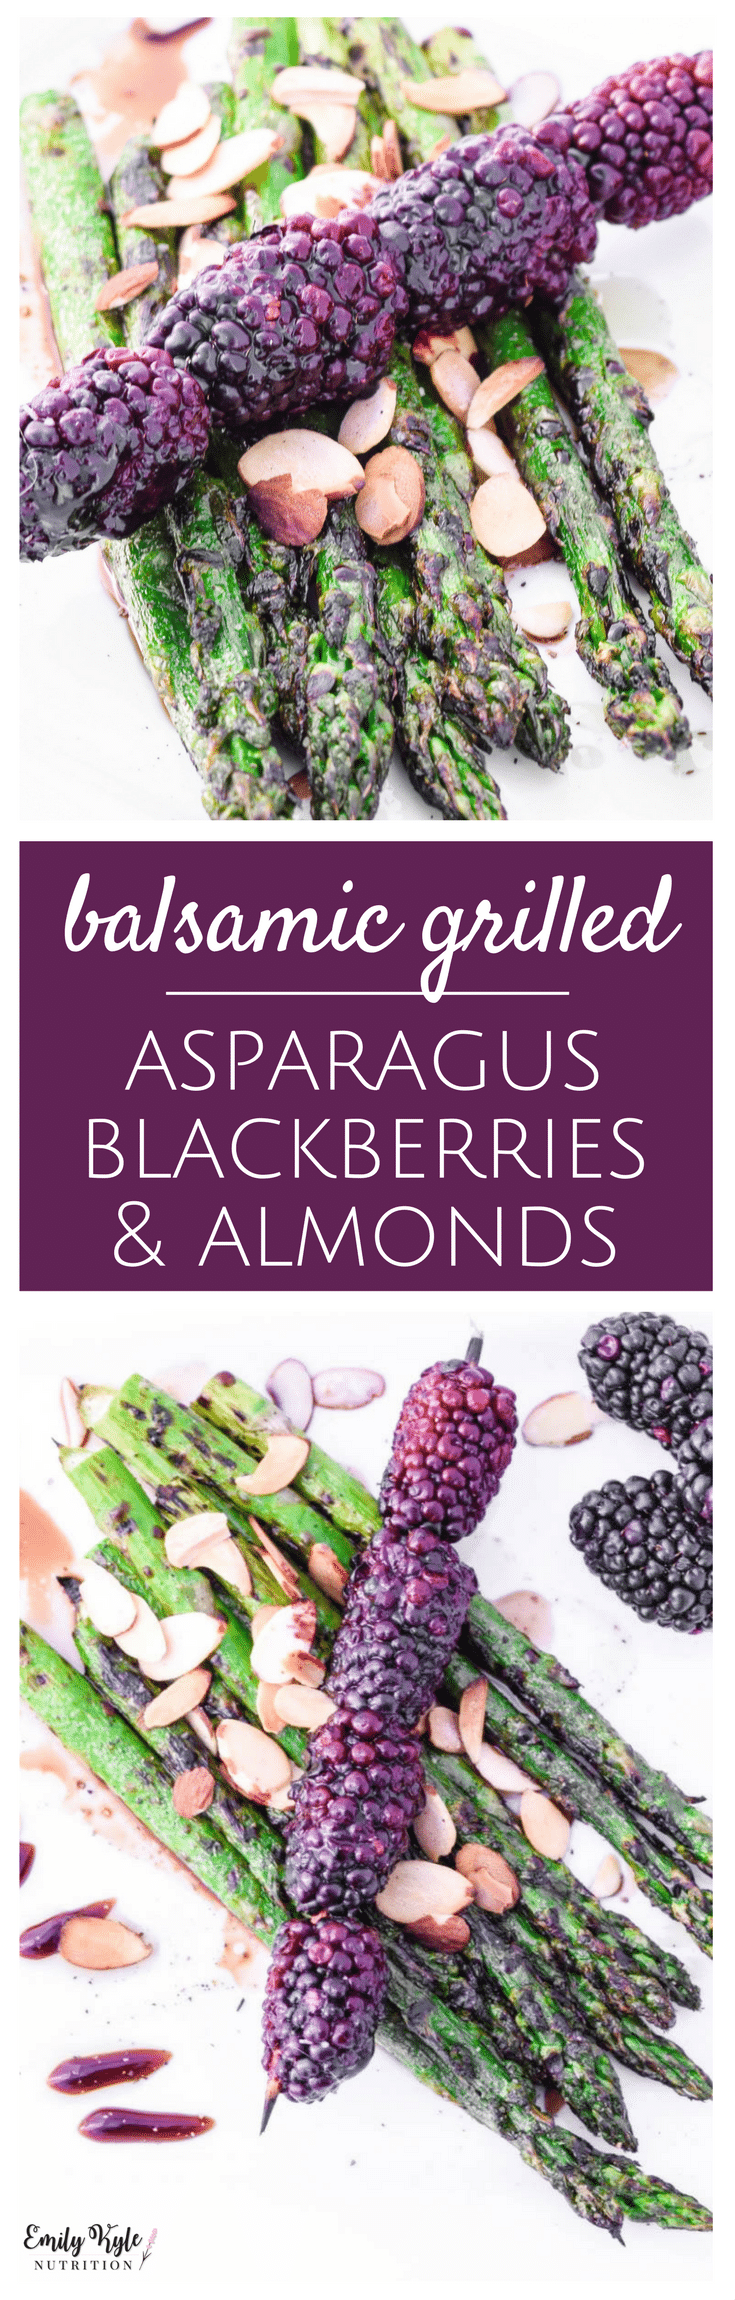 Wake up your taste buds and celebrate the return of spring with this fresh and delicious Balsamic Grilled Asparagus & Blackberries with Almonds dish!